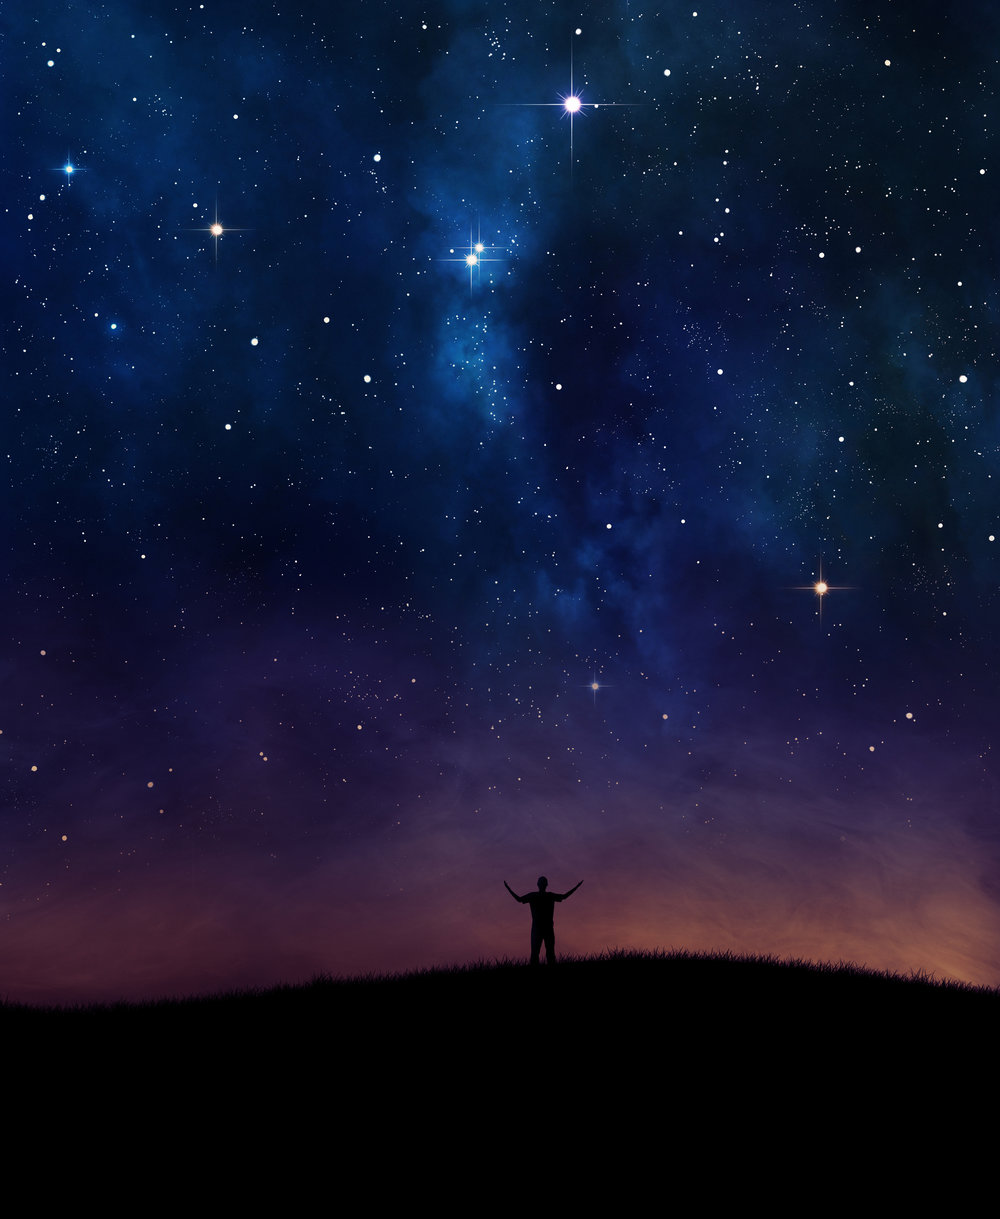 man-lifting-hands-under-night-sky.jpg